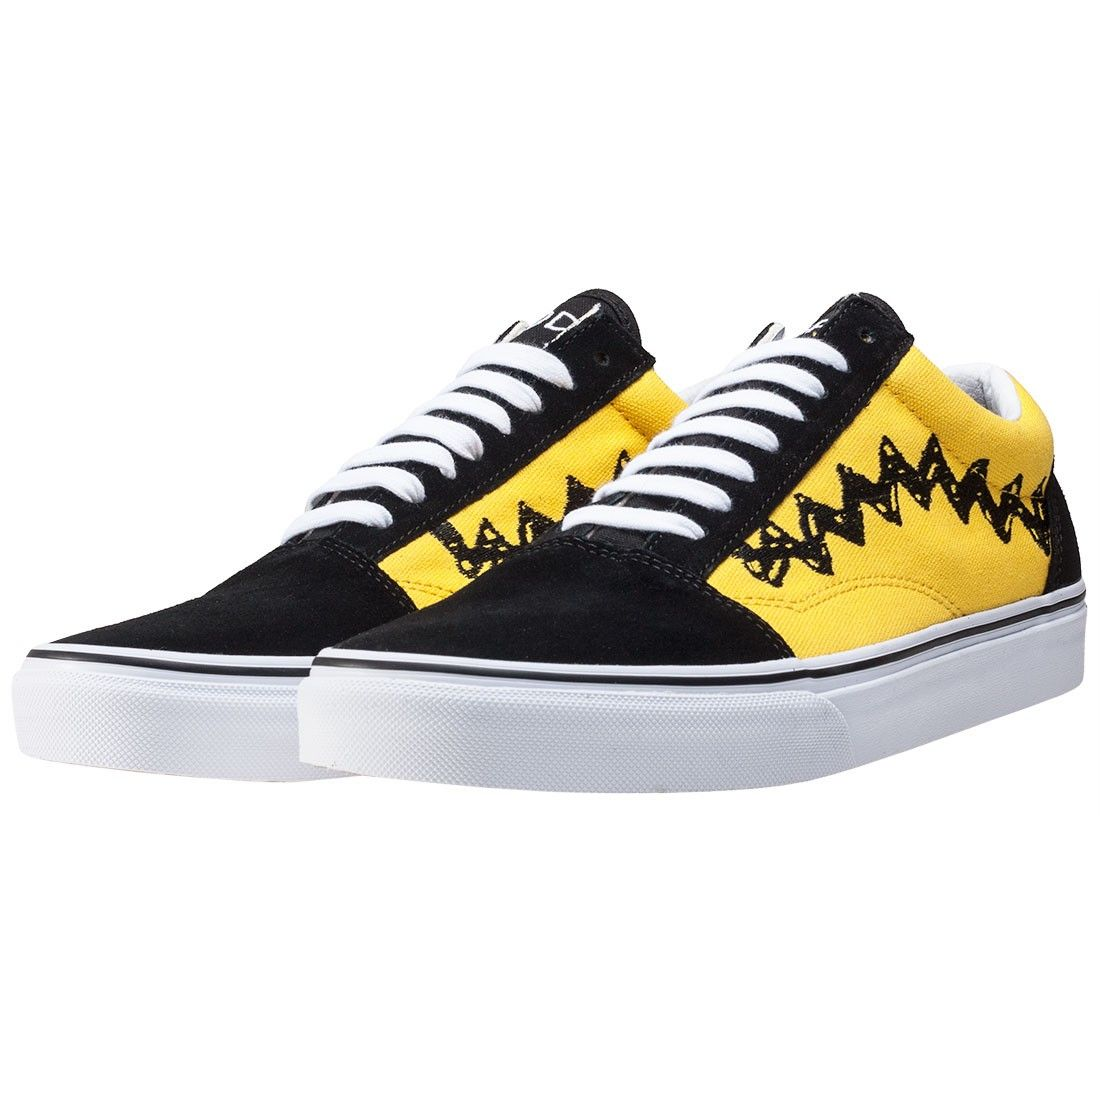 9a9c3074cb7 Vans X Peanuts Old Skool Charlie Br Unisex Trainers in Black Yellow ...